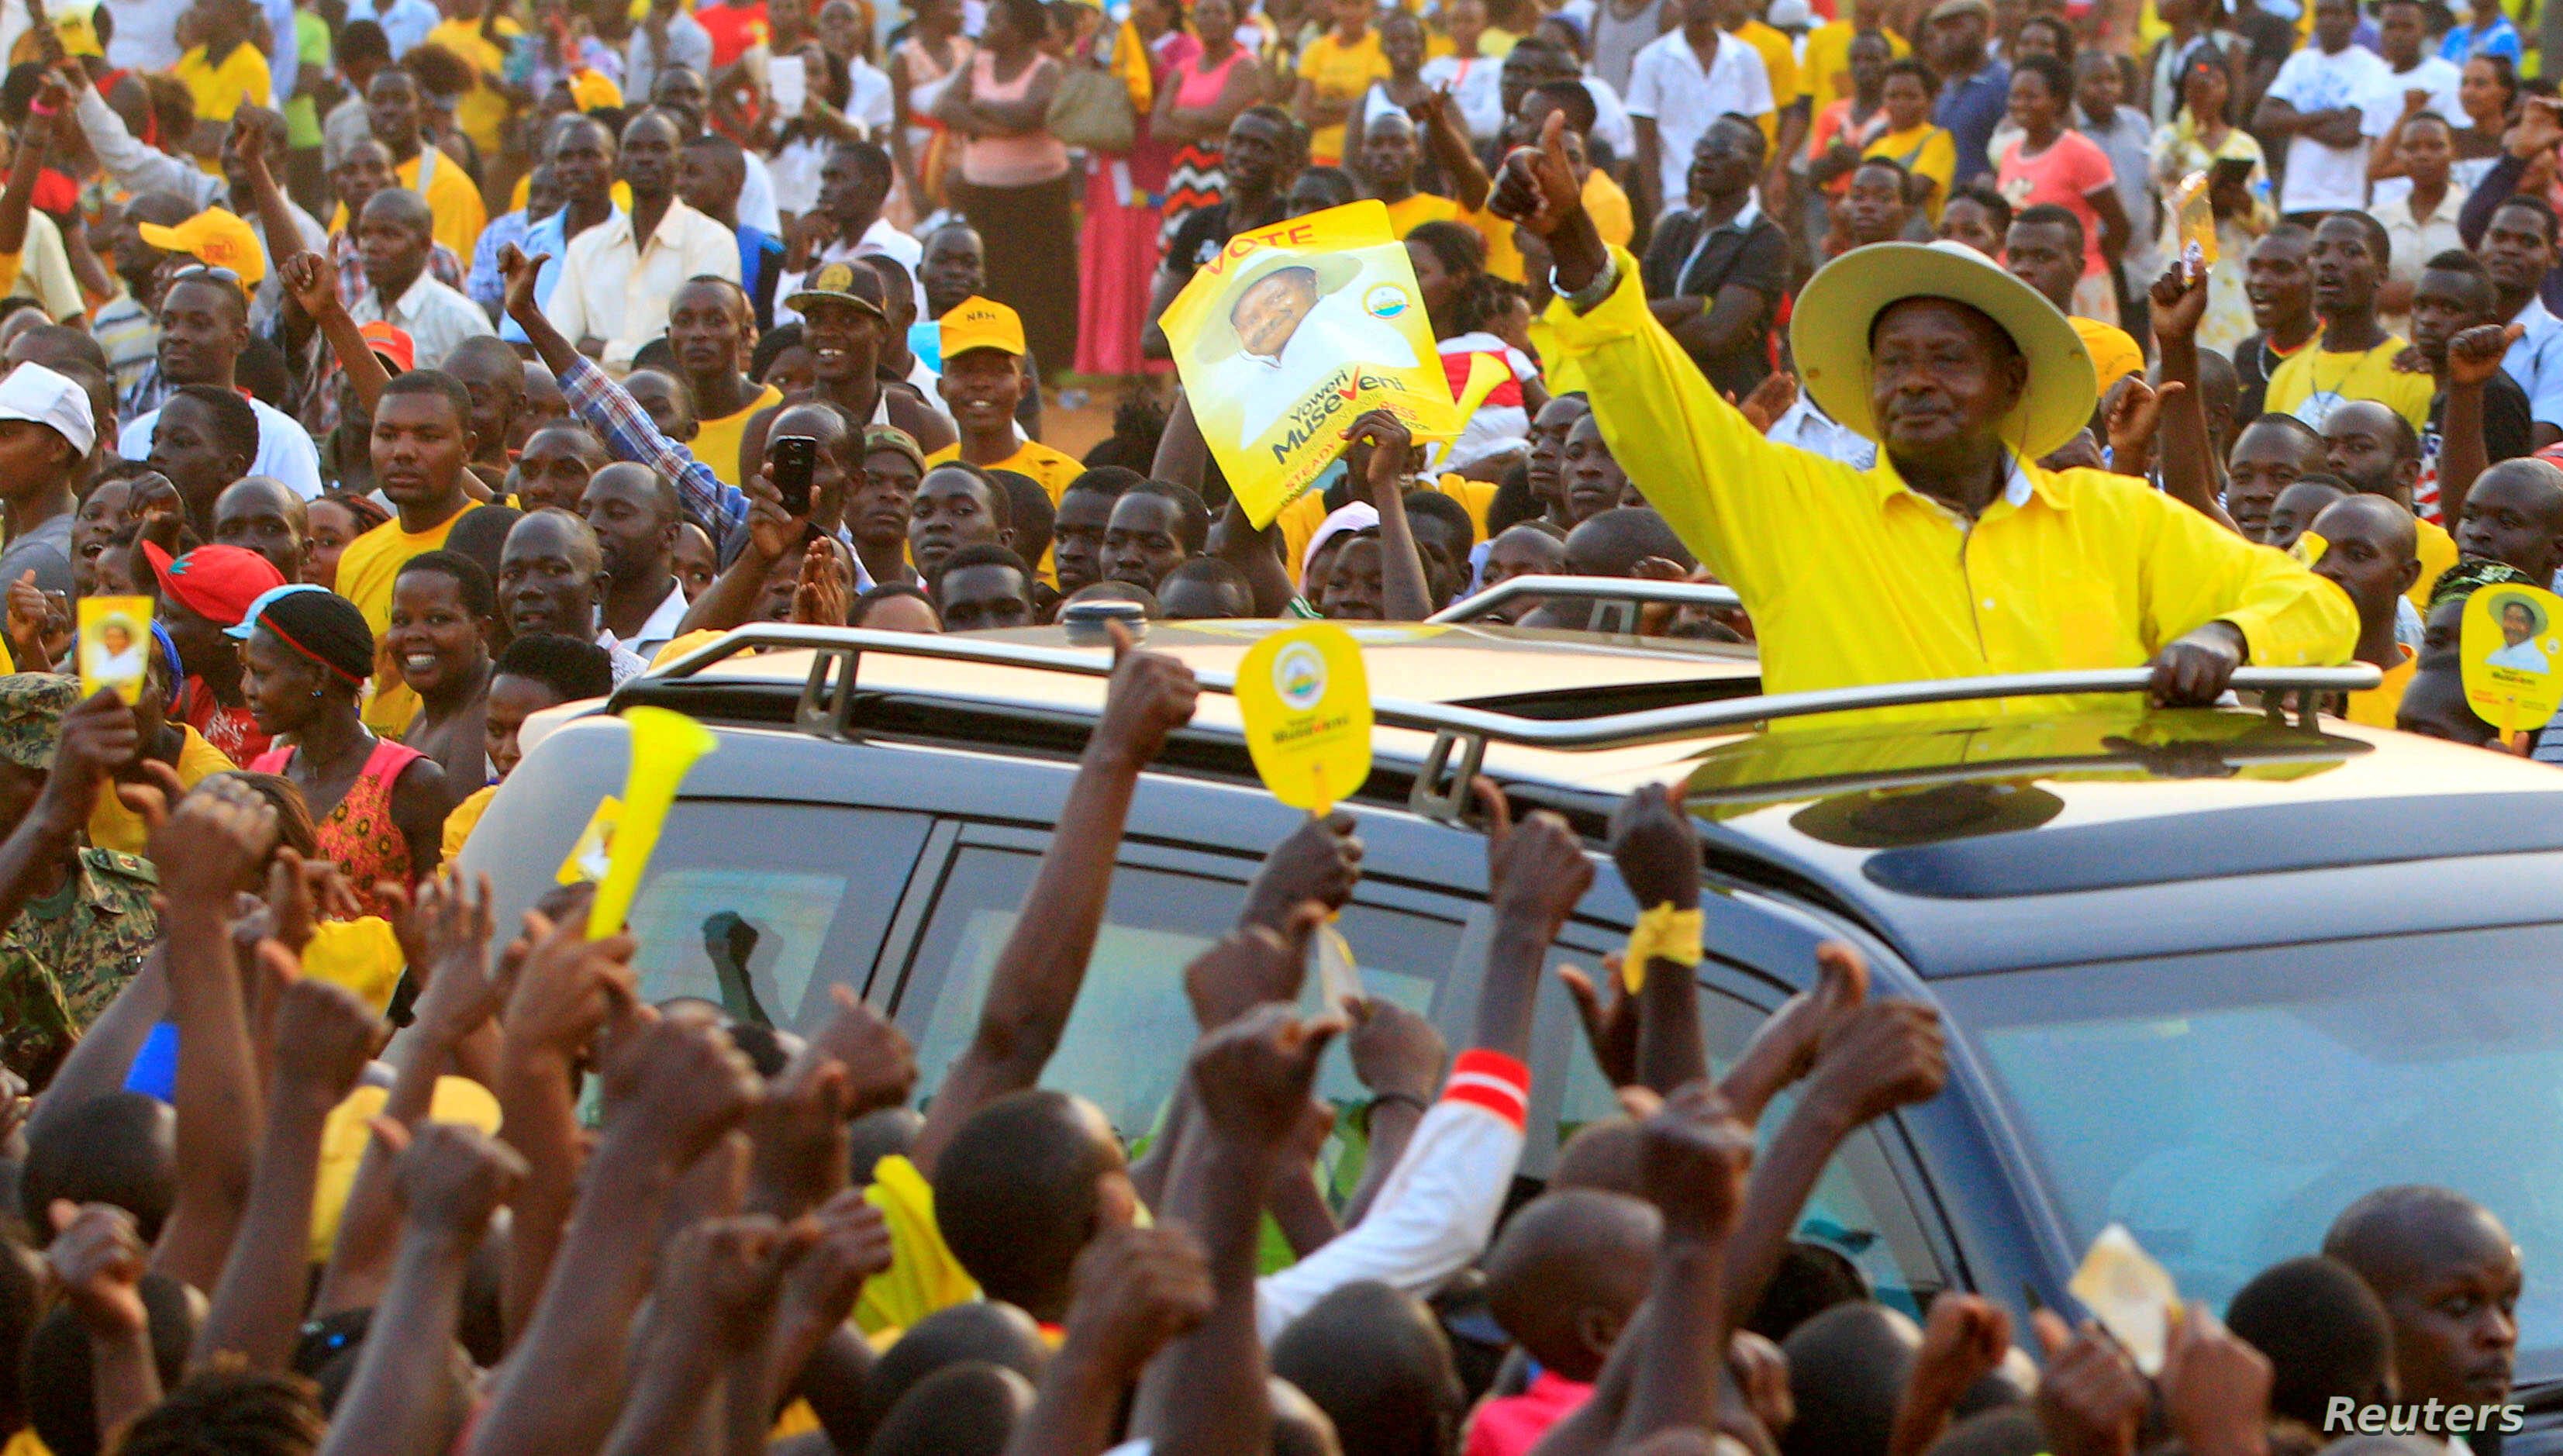 Uganda President's Car Attacked, Damaged in Campaign | Voice of America - English